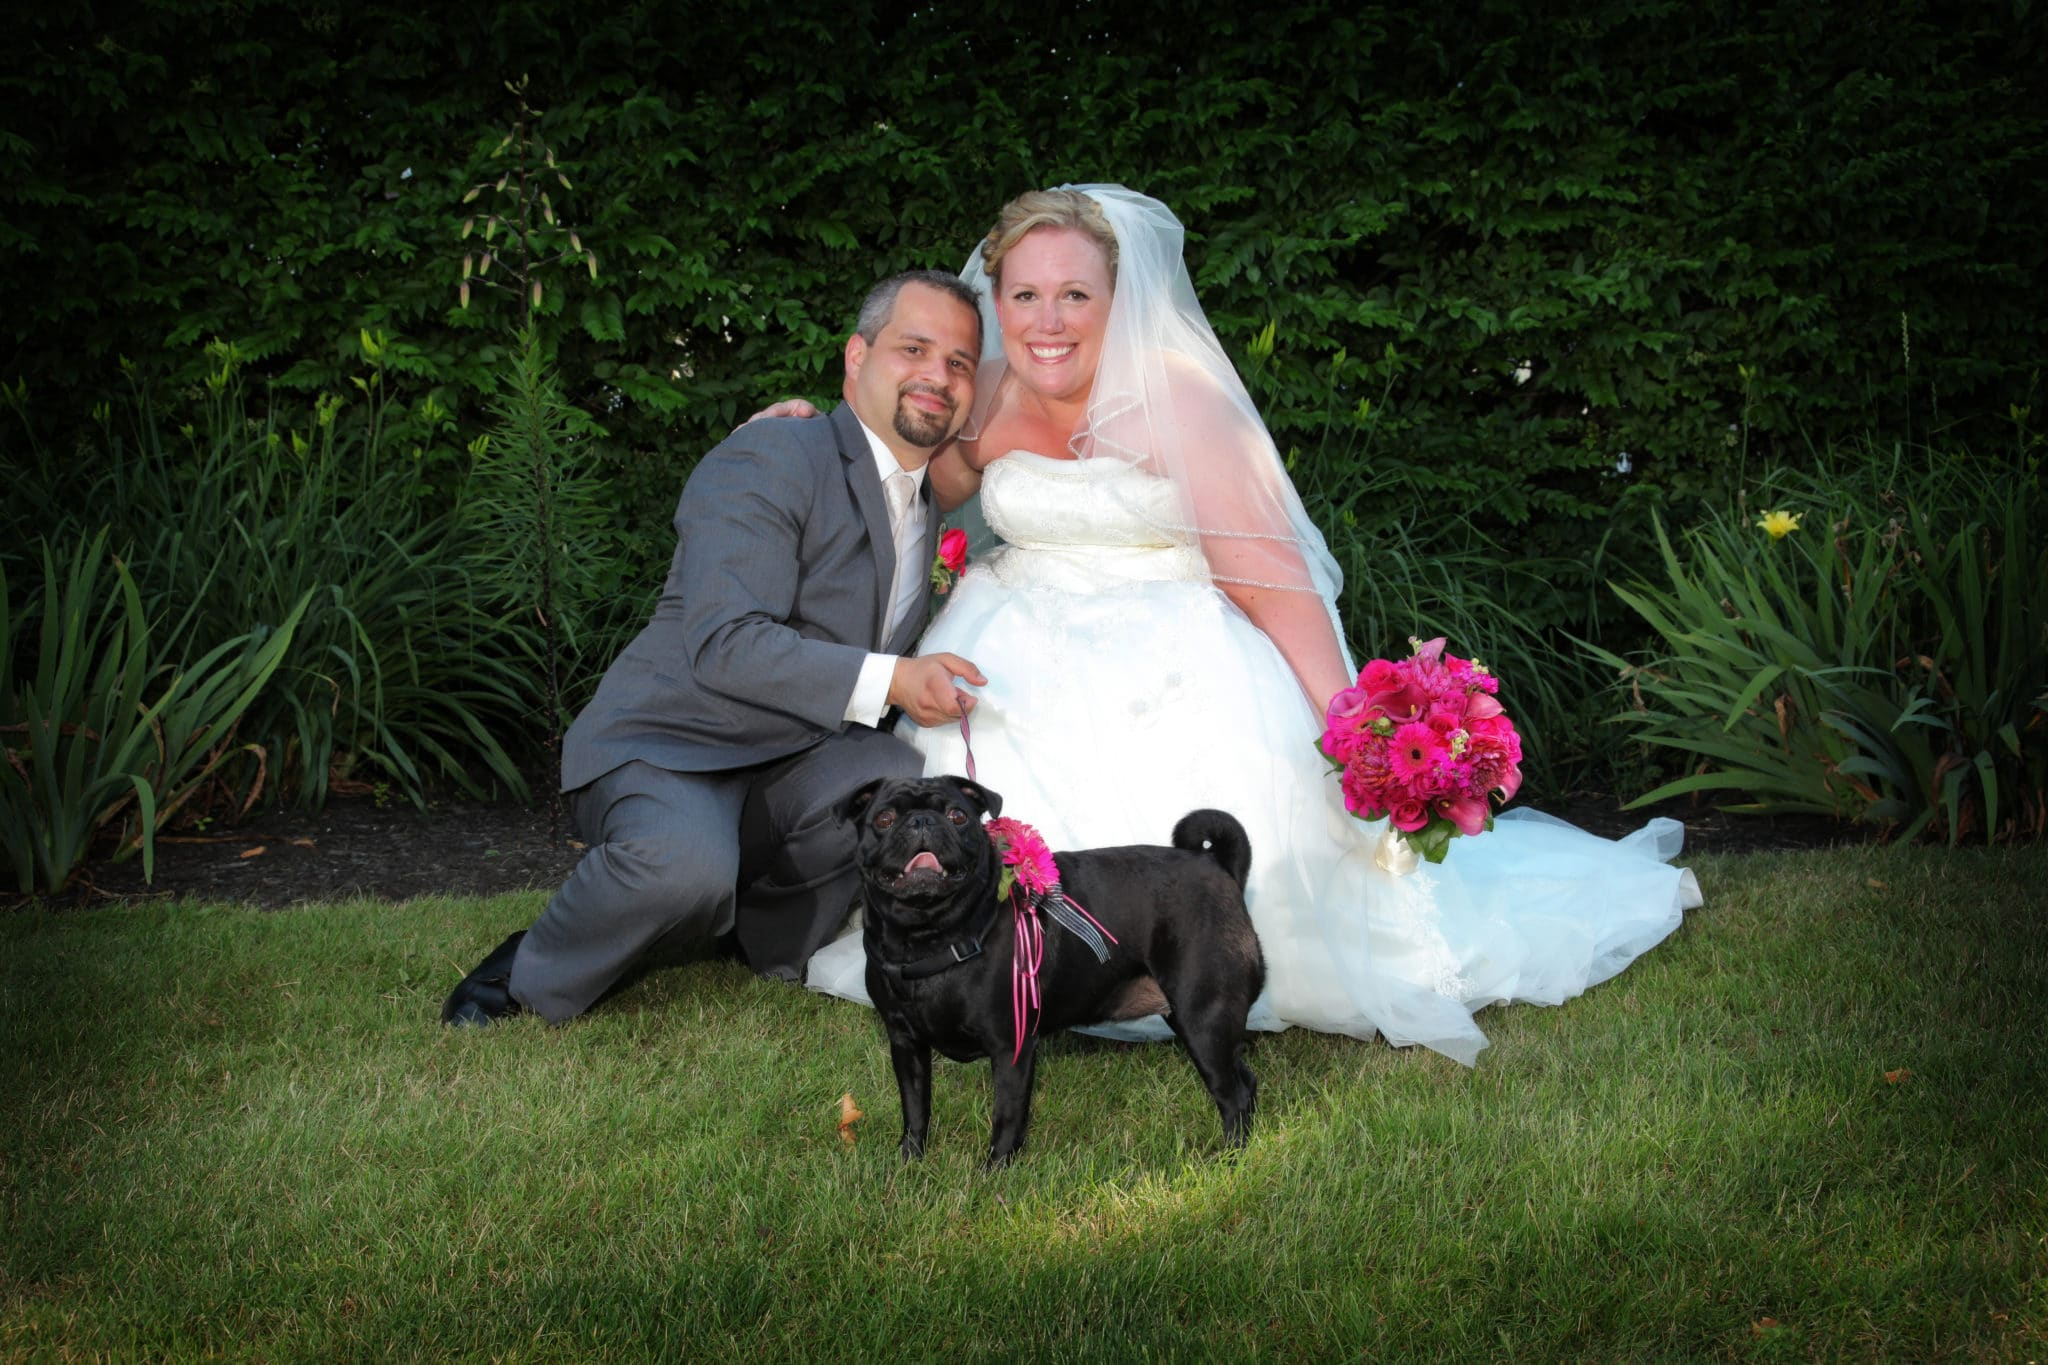 Personal Pet Care with Wedding Concierge Services